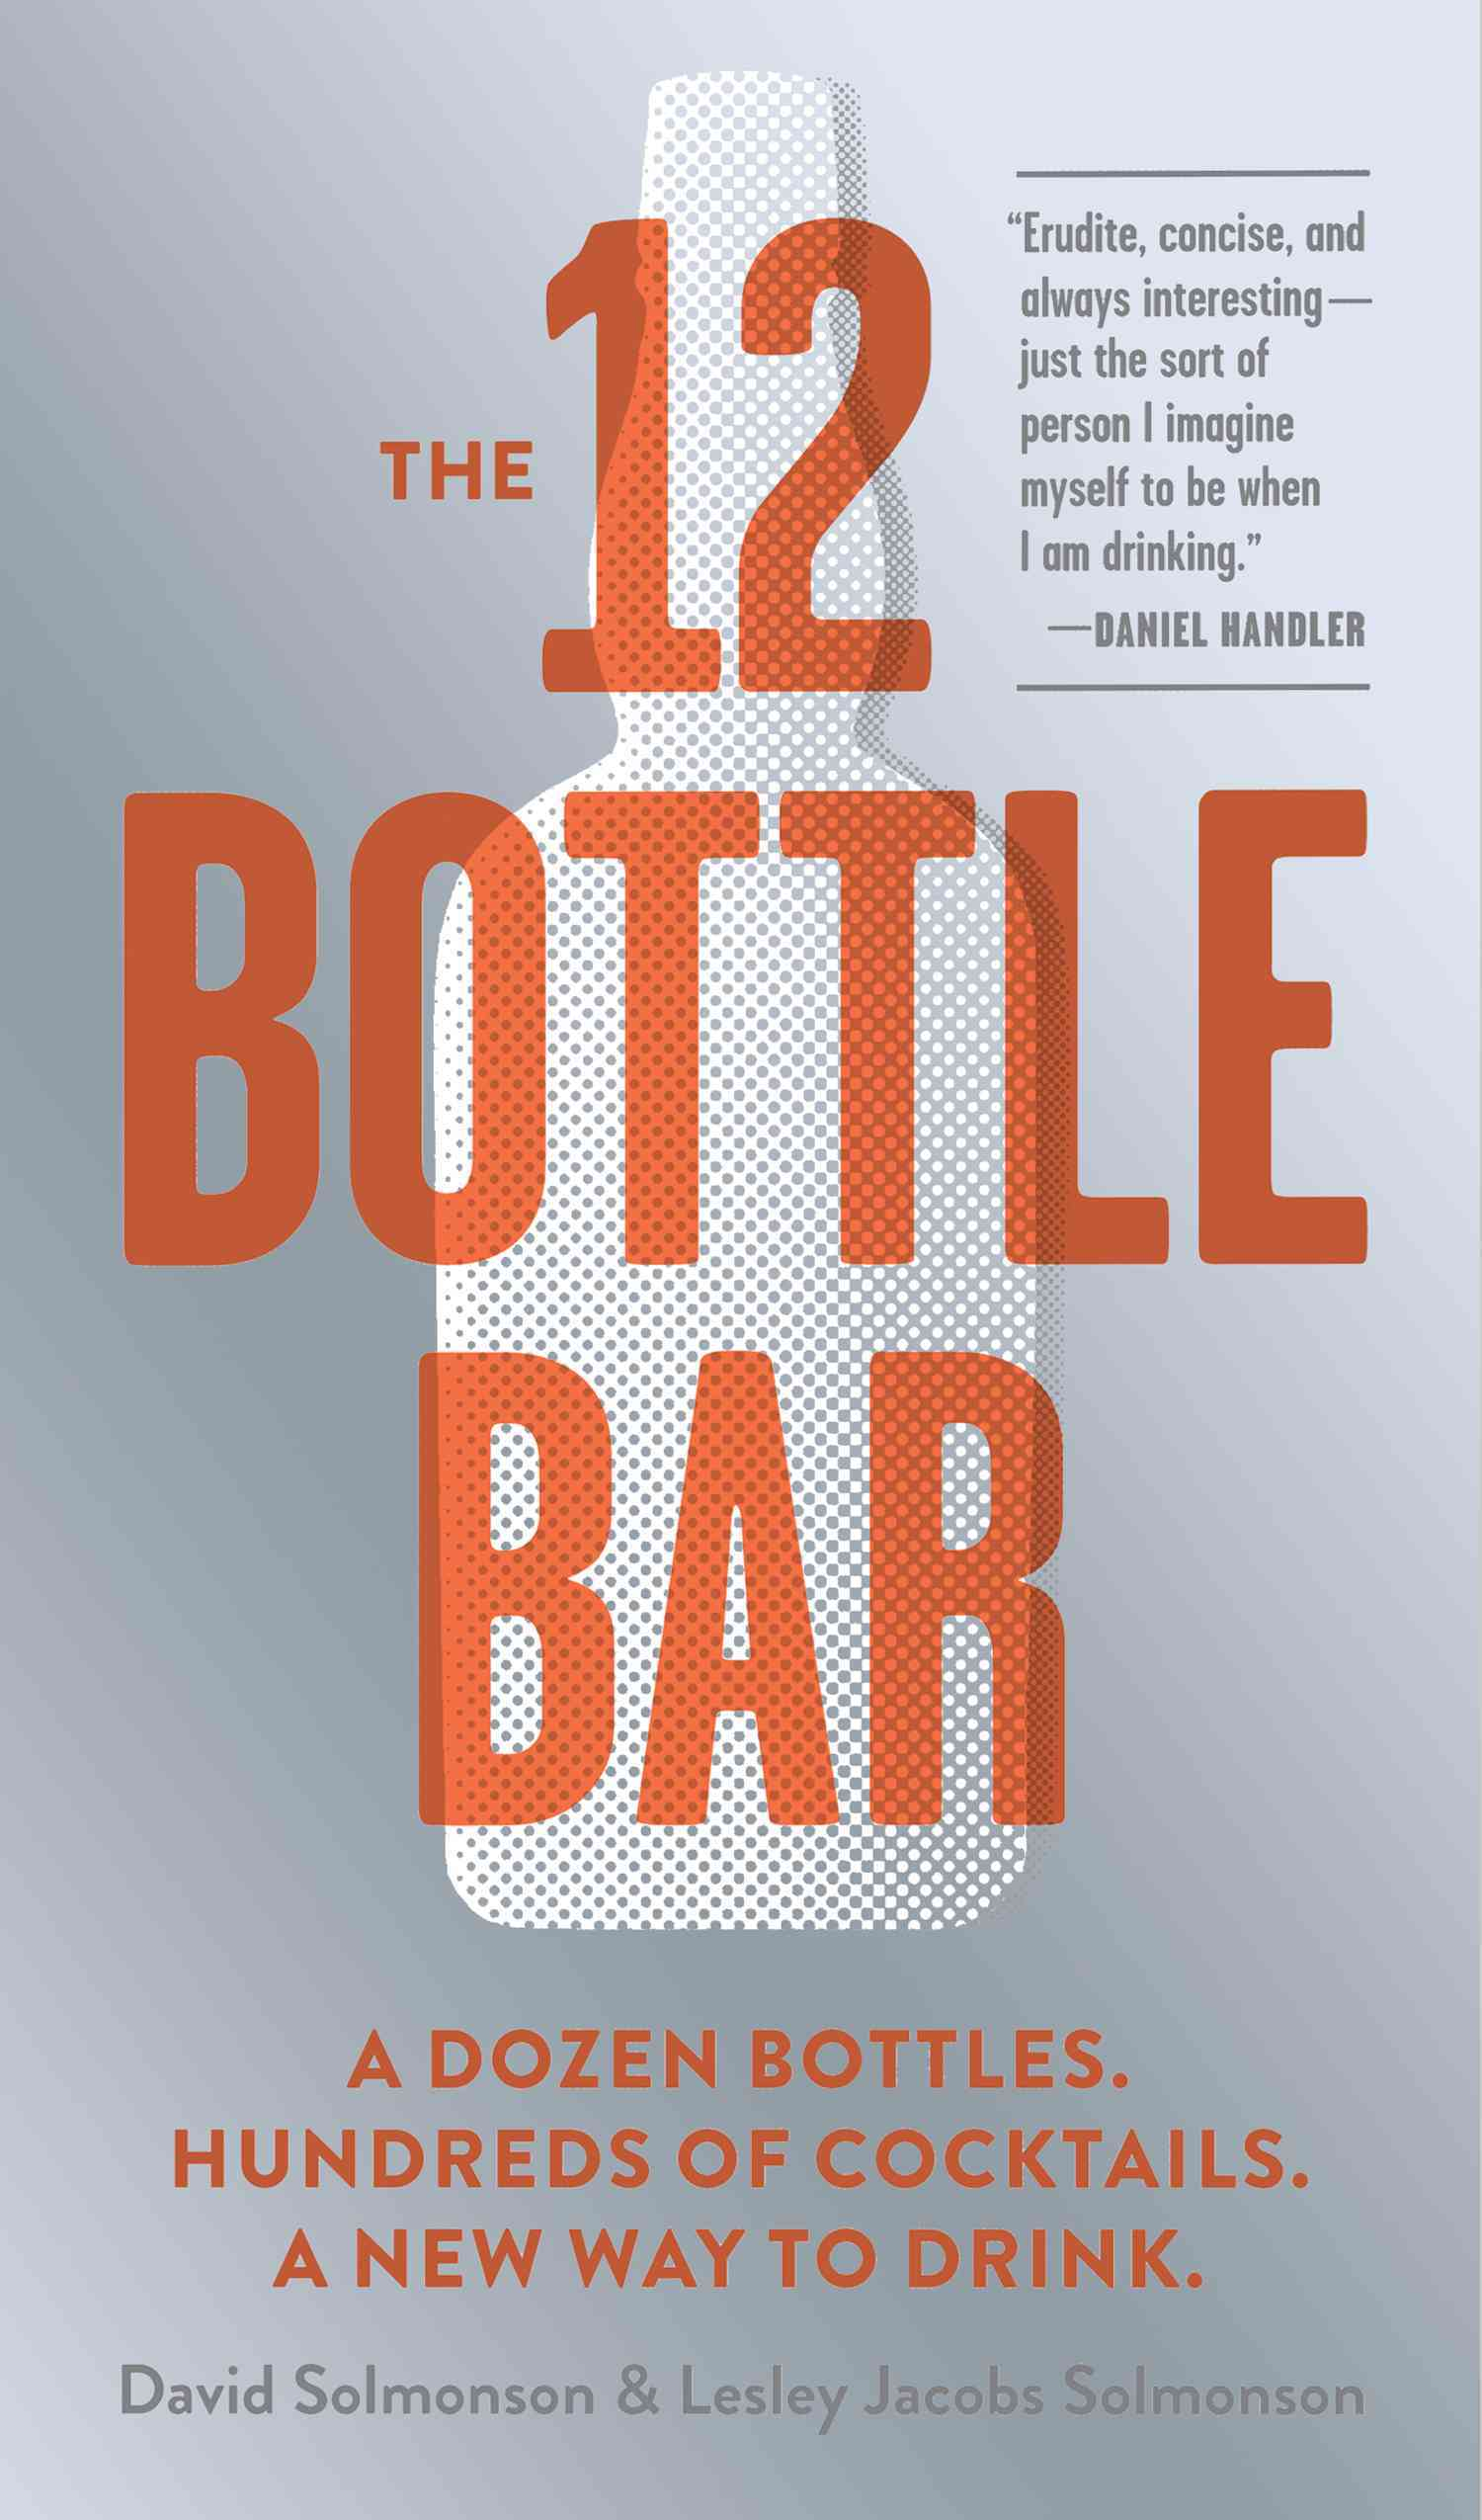 The 12 Bottle Bar By Solmonson, David/ Solmonson, Lesley Jacobs